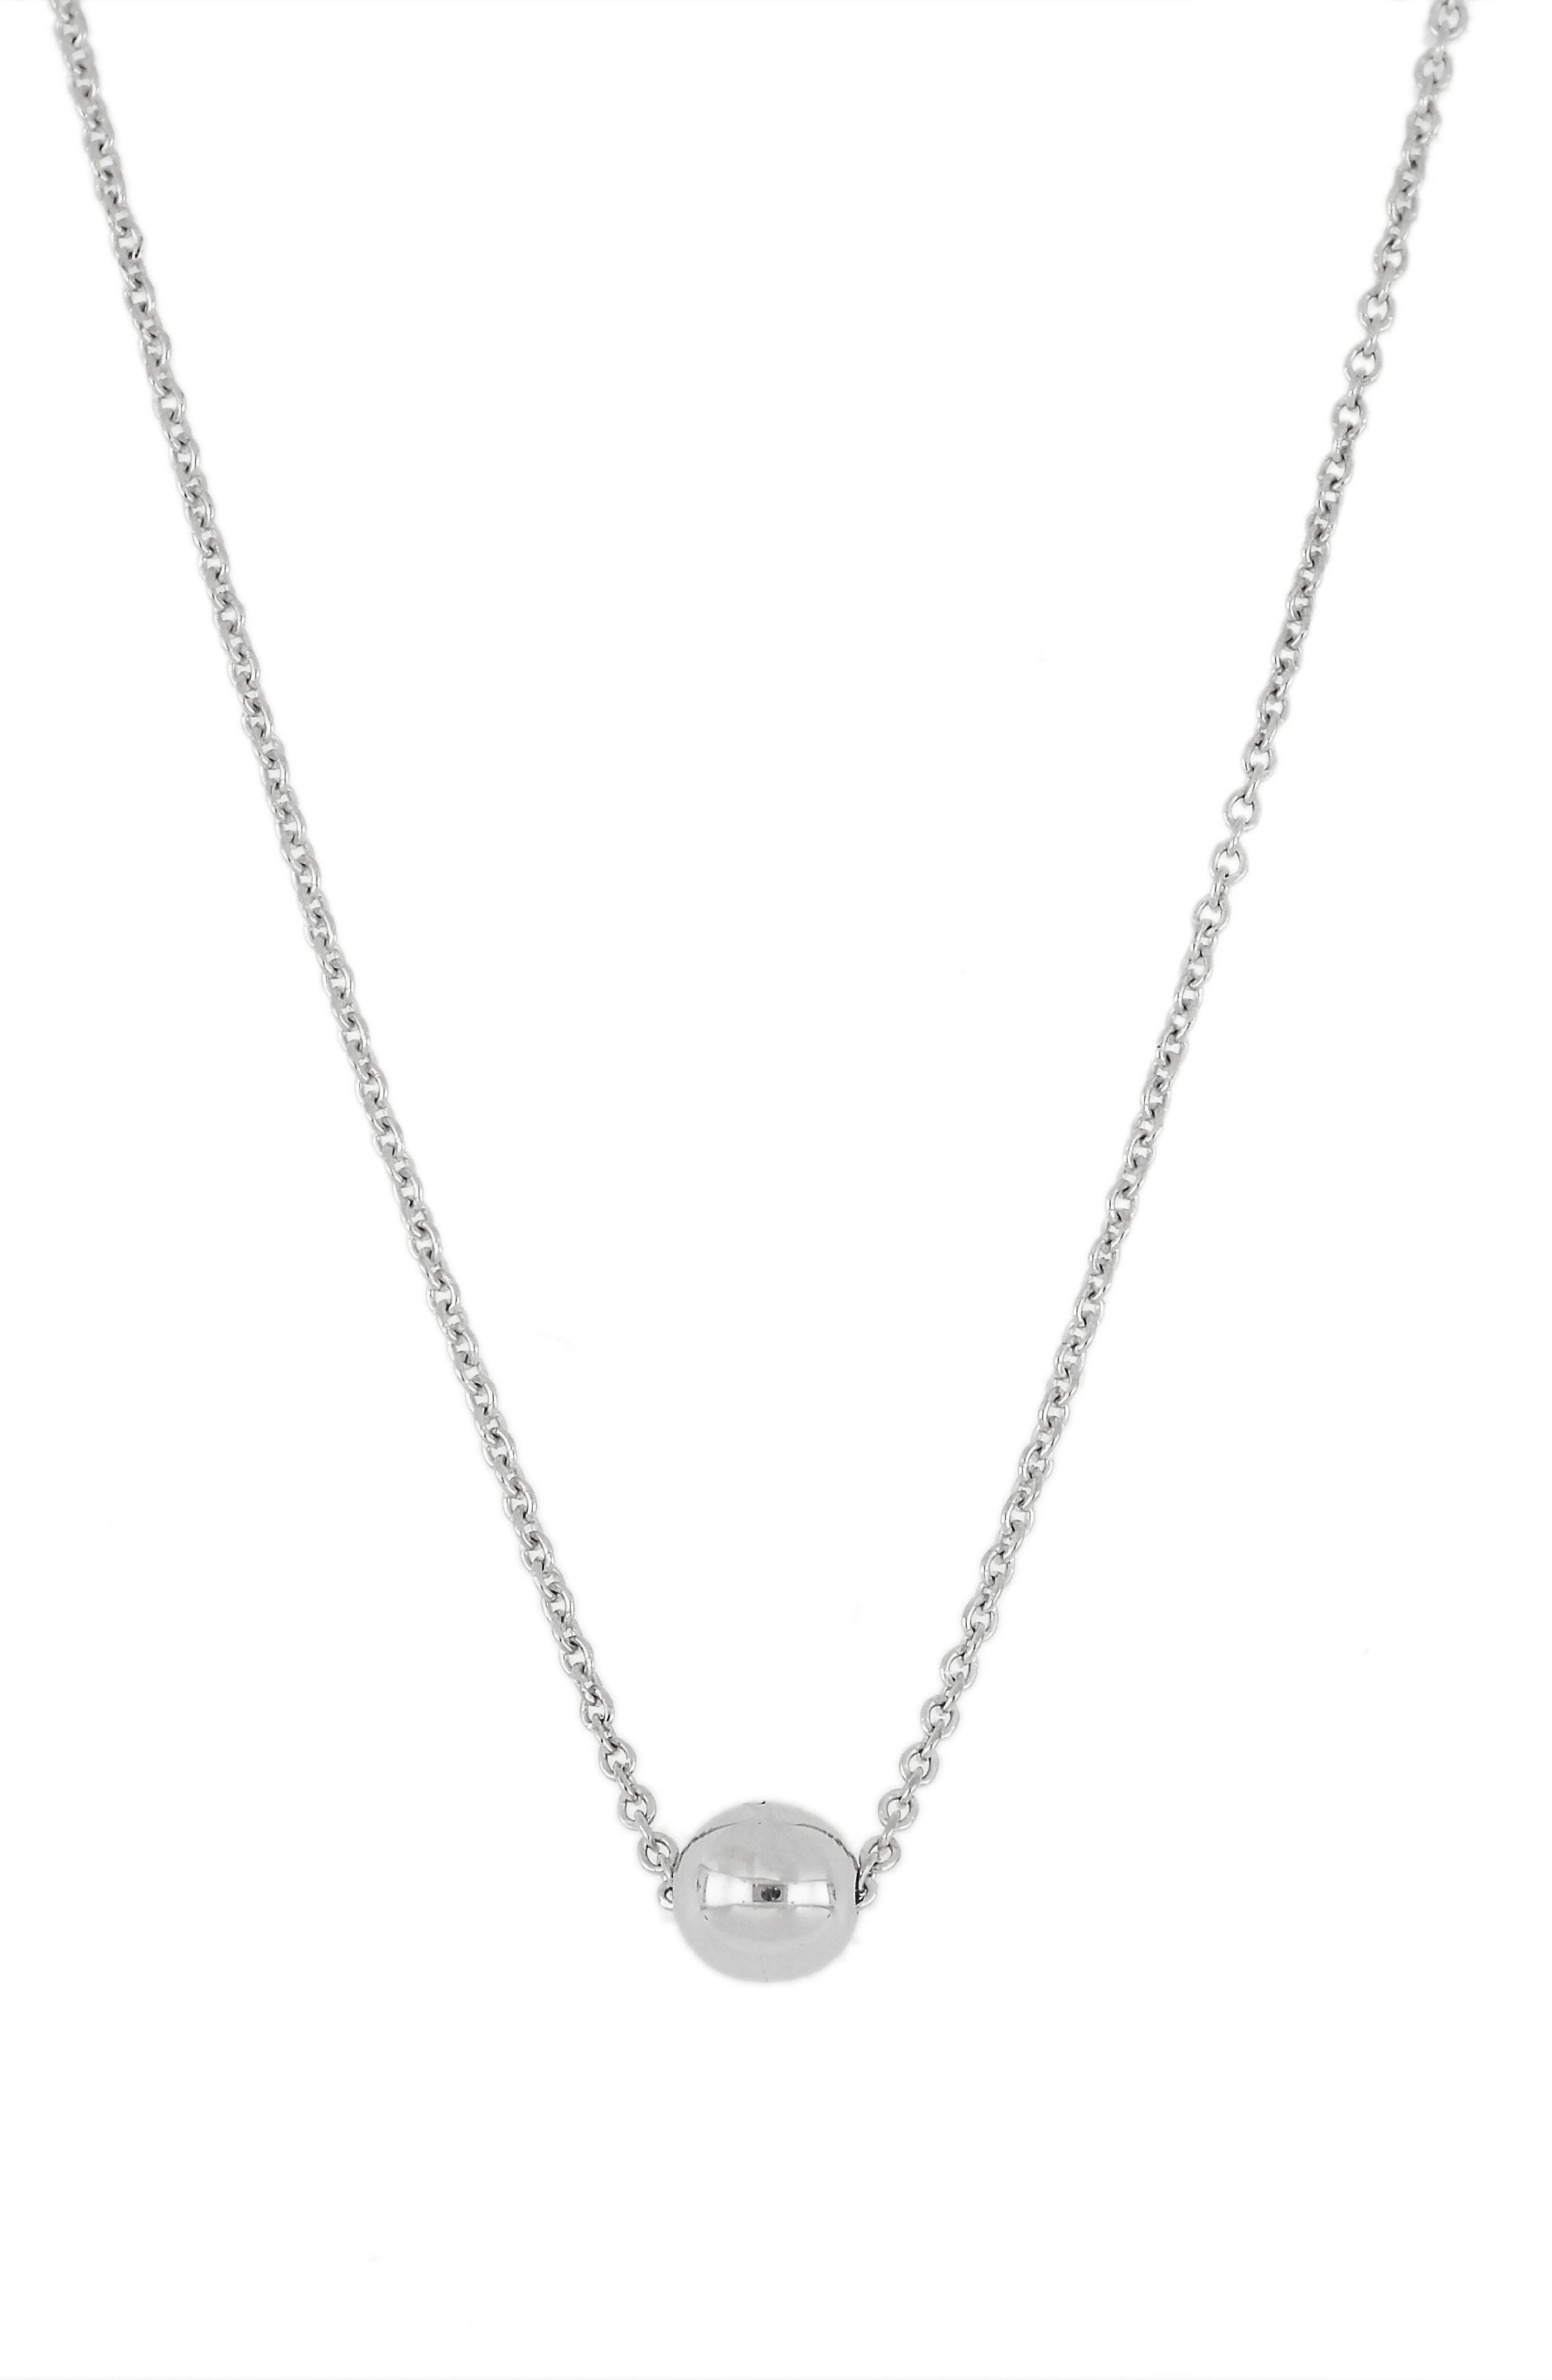 Ball Pendant Necklace,                         Main,                         color, White Gold